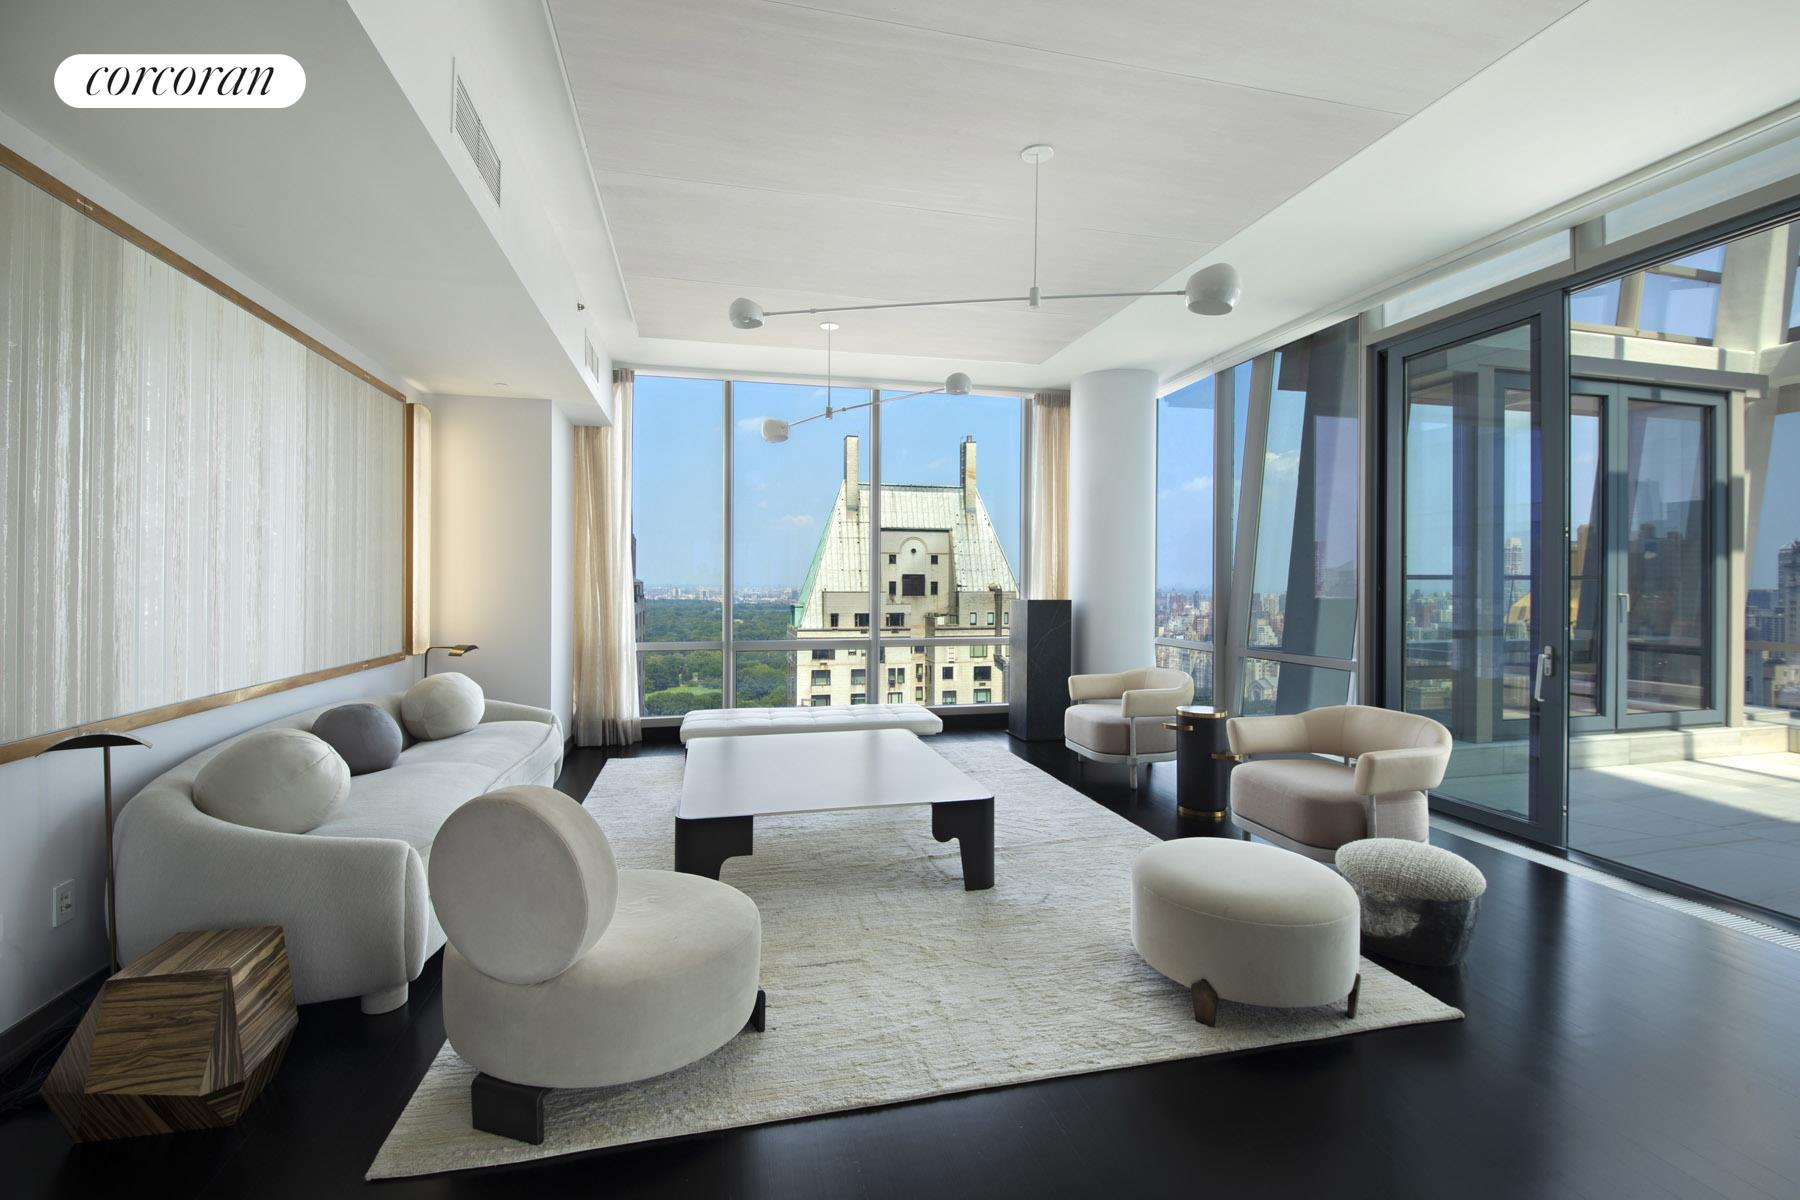 Featuring one of the most unique and tasteful floor plans of any residence on Billionaire's Row, One57, Apartment 41D is an impressive 5 bedroom, 5.5 bathroom duplex condo with full length exposures to the North, East and South. One of only two residences in One57 to boast private outdoor space, with staggeringly beautiful views of Central Park and a bright and airy Solarium, this chic and triple mint home with its sweep of elegantly proportioned rooms is a rare and coveted purchasing opportunity that is not to be missed. The entry gallery with a generous coat closet, magnificent staircase leading up to the bedroom wing and floor to ceiling windows facing the Park affords the apartment an ambience that is at once stately and inviting from the moment you enter. Continue past the staircase to discover the Great Room that is just over 43 feet in length and offers 180 degrees of floor to ceiling windows. Adjacent to the Great Room is the home's most extraordinary feature, a prismatic glass Solarium with French doors that lead out to a small terrace overlooking the Park. An eat-in kitchen with an abundance of storage space made possible by a wealth of custom cabinetry from Smallbone of Devizes is located off the foyer for maximal convenience. With top-of-the-line appliances from Miele and Sub Zero and a sprawling island with integrated stools, this kitchen can accommodate the needs of the most discerning chef.Off the entry gallery, a separate wing leads to a king-sized bedroom with en-suite bathroom and an abundance of closet space. A secluded laundry room and an additional powder room to accommodate guests are also located on the first level. Four bedrooms including the Primary await you on the grandiose second level. The Primary suite offers a massive bedroom overlooking the Park, a walk-in closet with floor to ceiling windows, a luxurious stall shower, soaking tub, double vanity and two private WC stalls. All three of the additional bedrooms are king-sized and feature